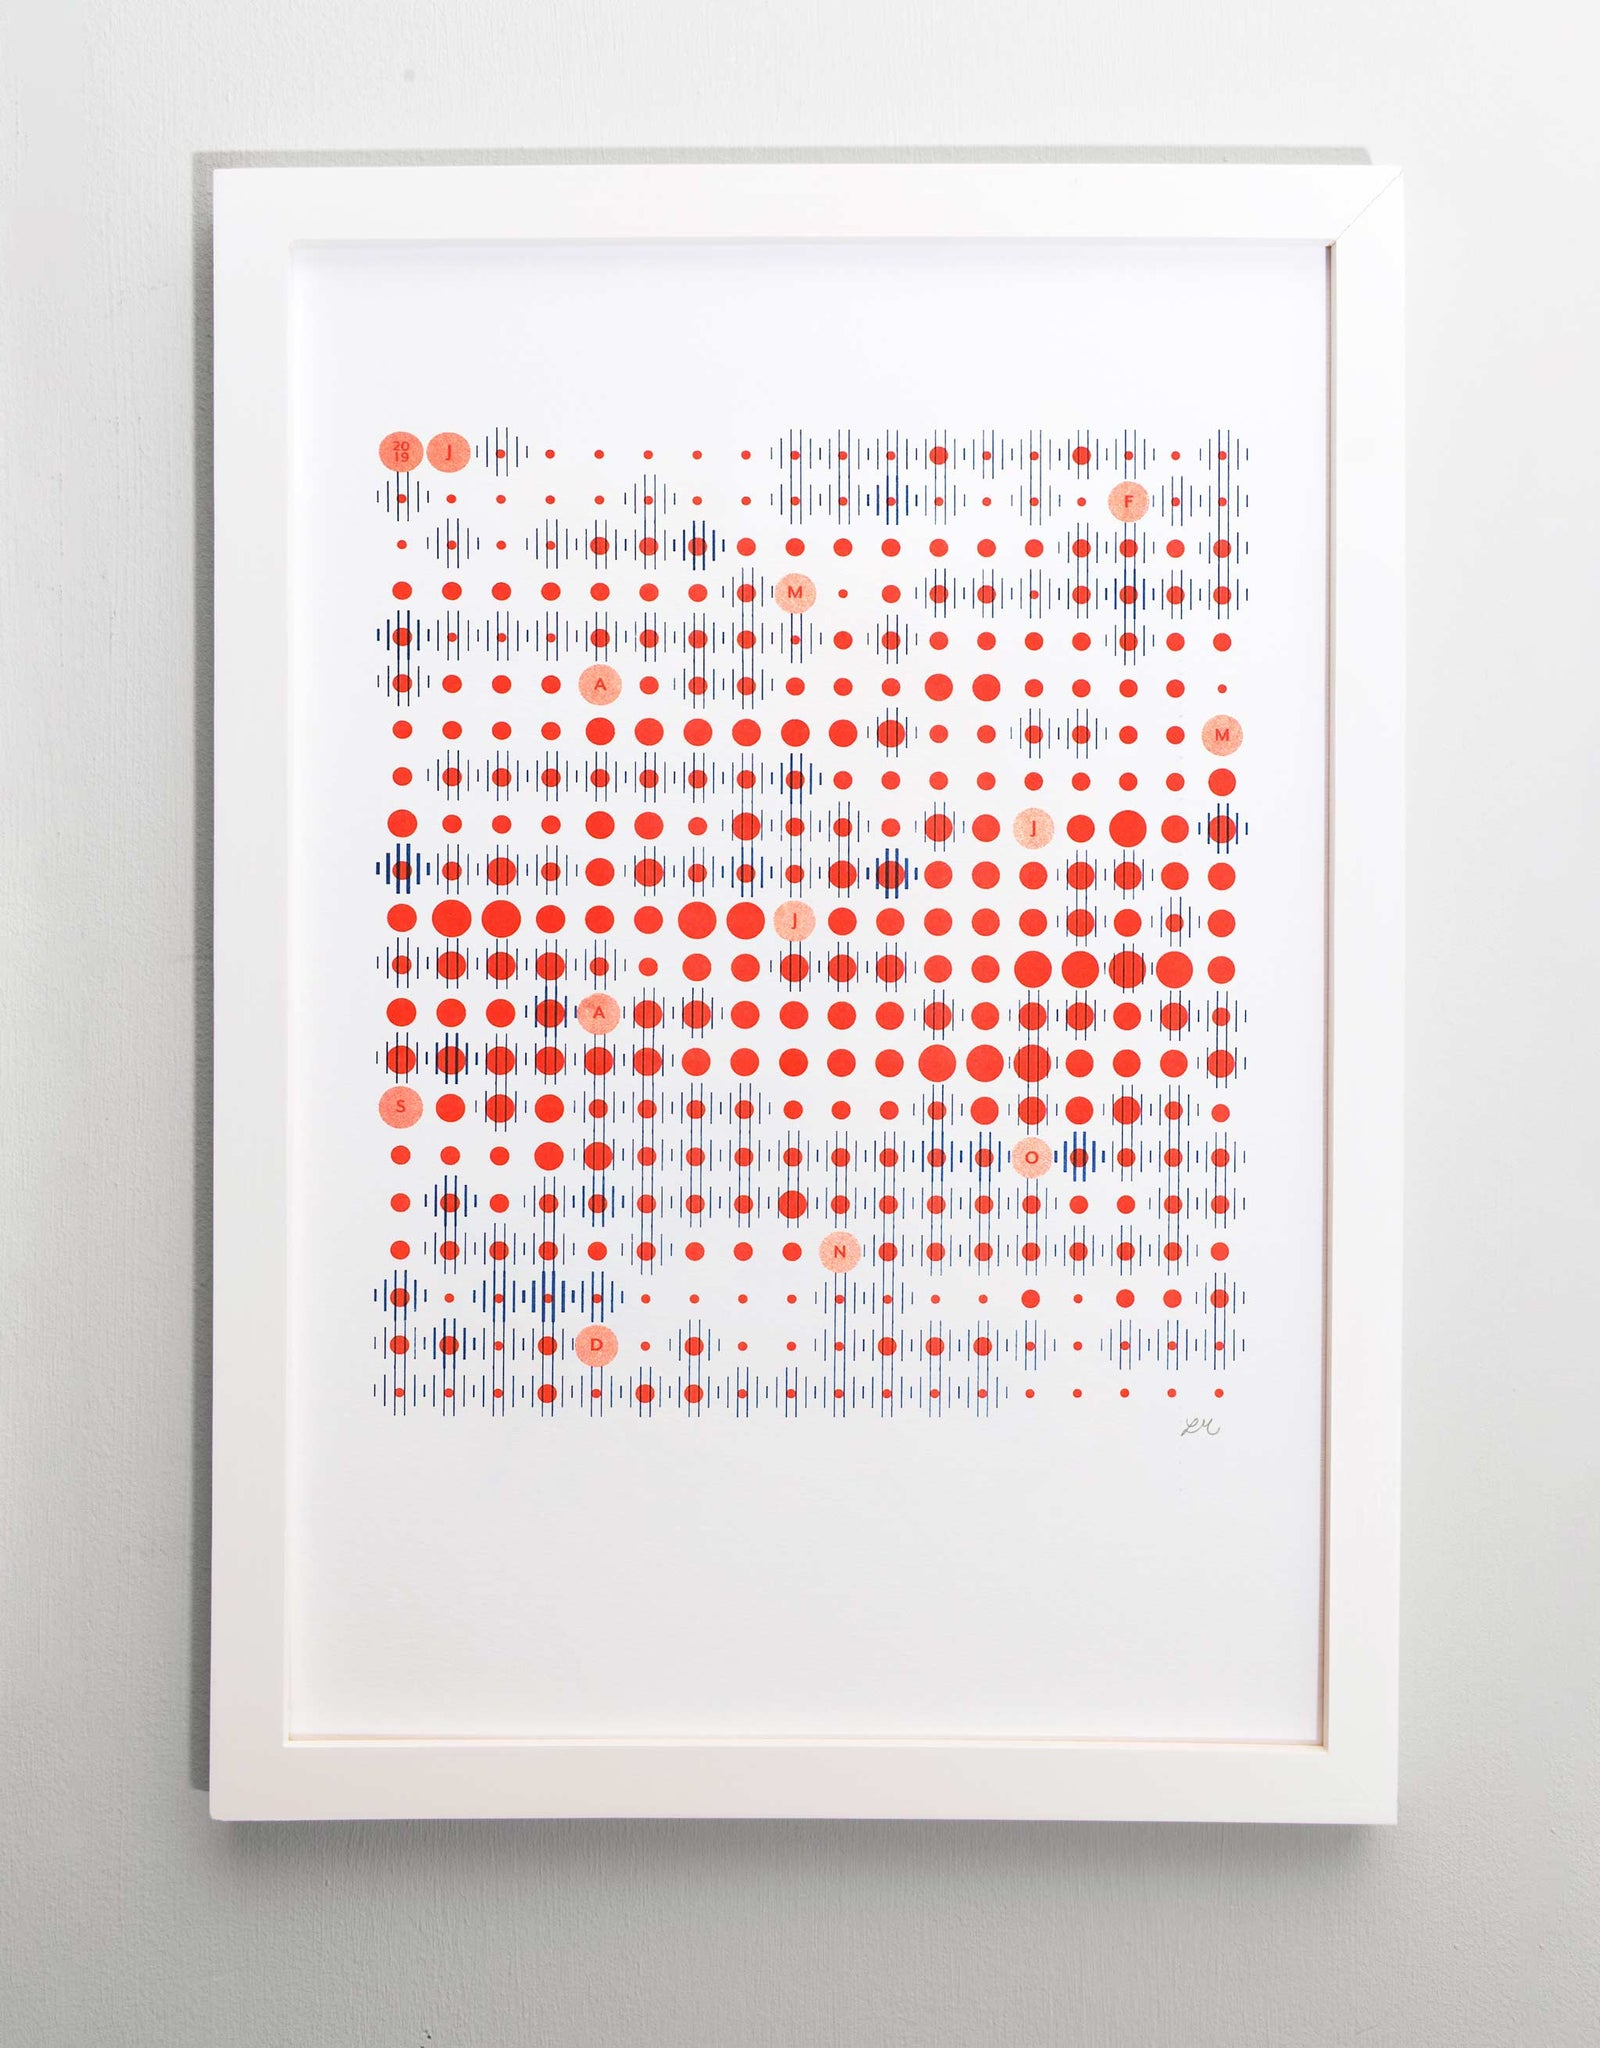 Framed A3 data-visualisation print of Amsterdam weather pattern in blue and red grid formation on white paper